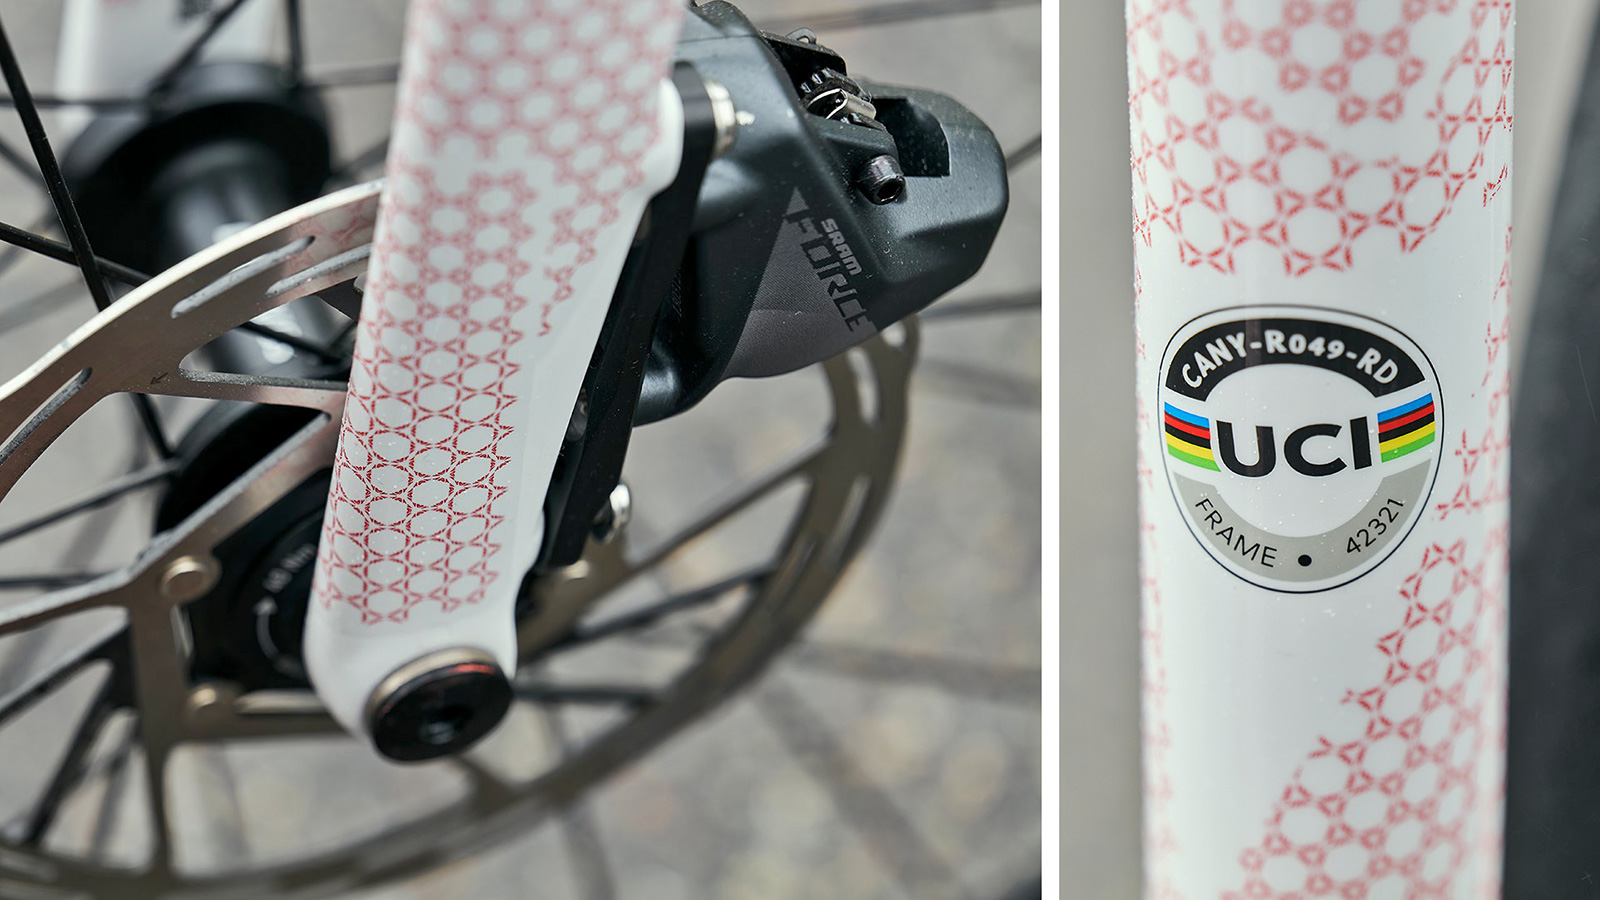 Canyon Ultimate CF SLX 8 Disc TDF limited edition carbon road bike, photo by Tino Pohlman, 108th Tour de France,details